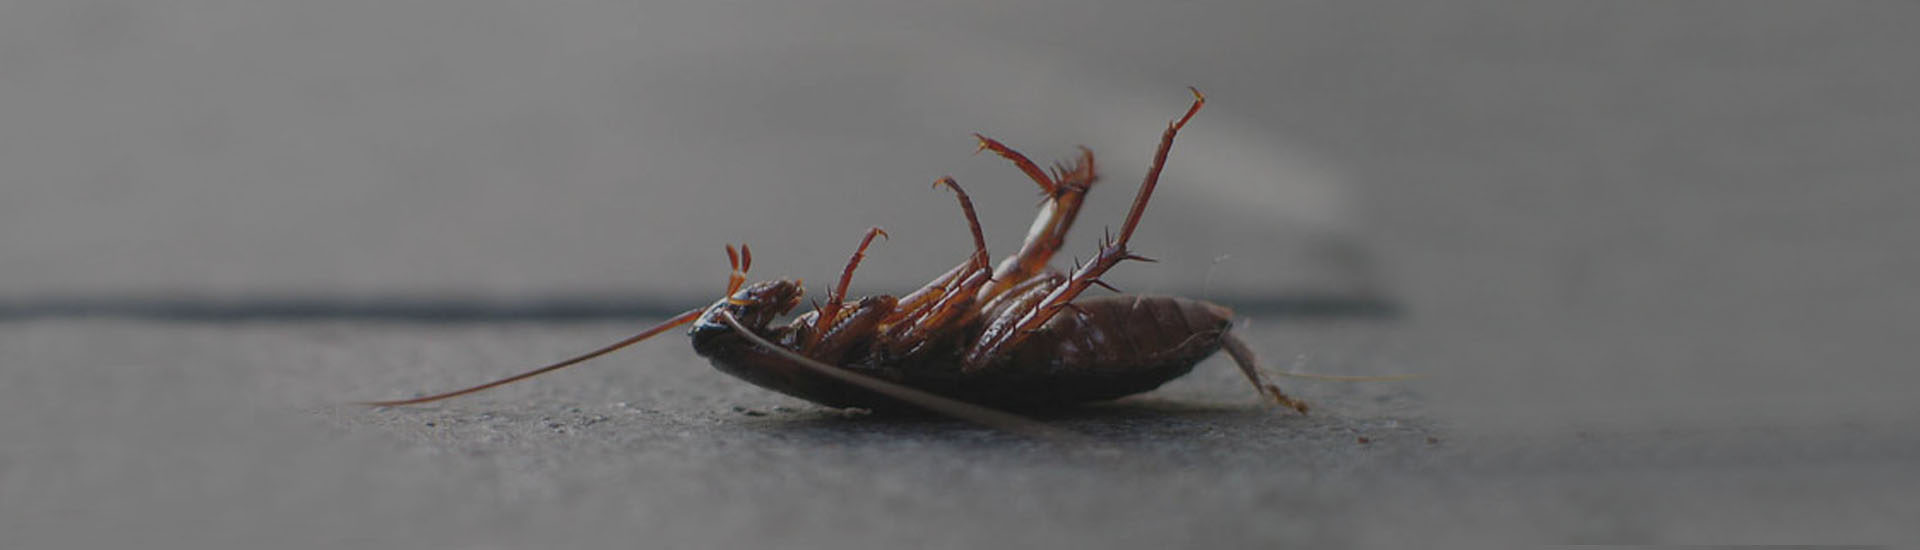 Cockroaches are extremely resilient pests